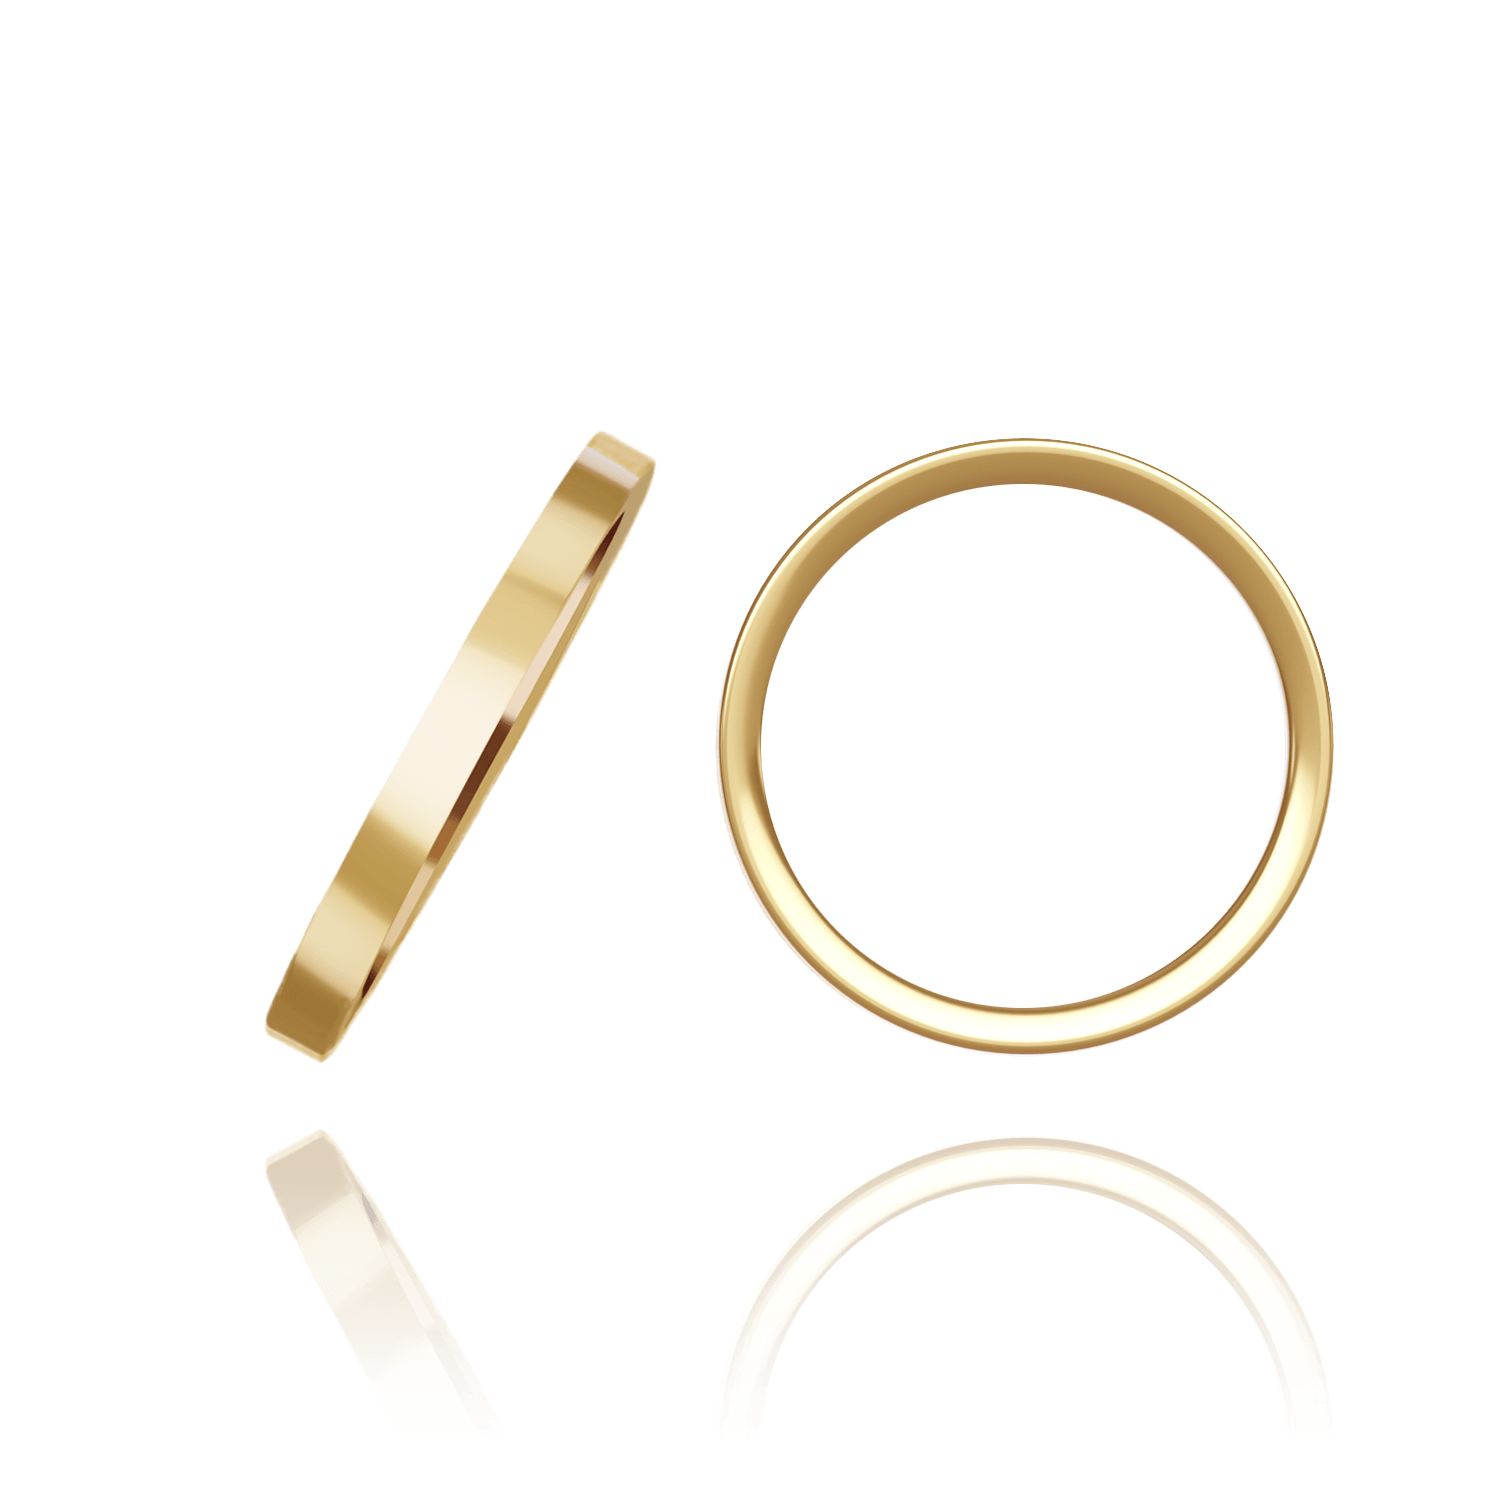 14K Yellow Gold Flat Wedding Bands (2.0 mm - 10.0 mm)